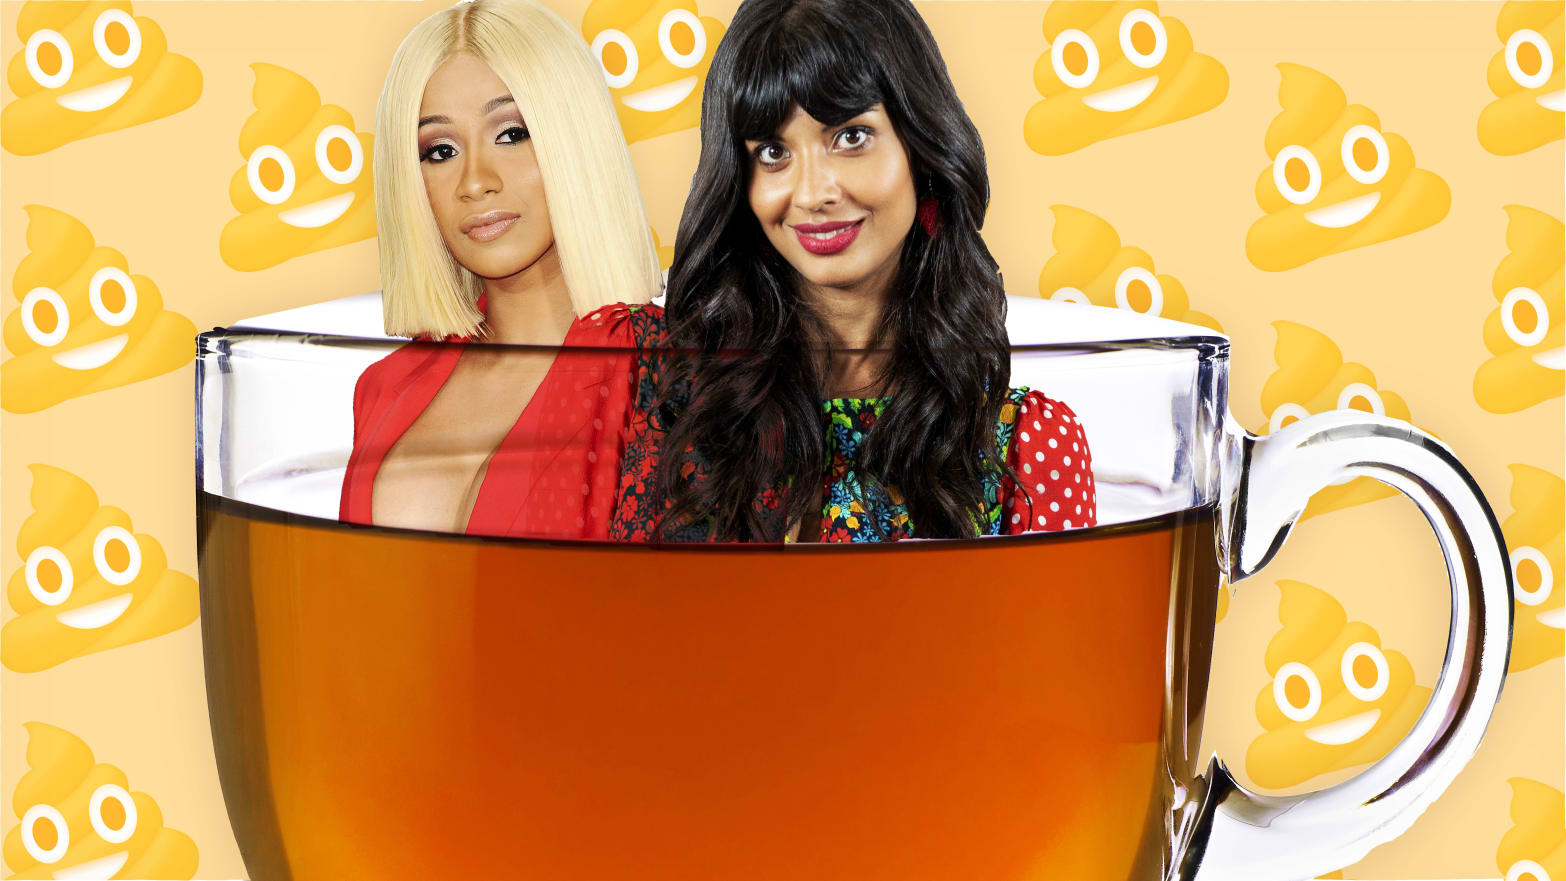 illustration of cardi b and jameela jamil floating in a cup of detox tea with poop emoji wallpaper behind them teami kylie jenner laxative diarrhea poop diet instagram kardashian fda david seres regulation debunker the good place post baby body